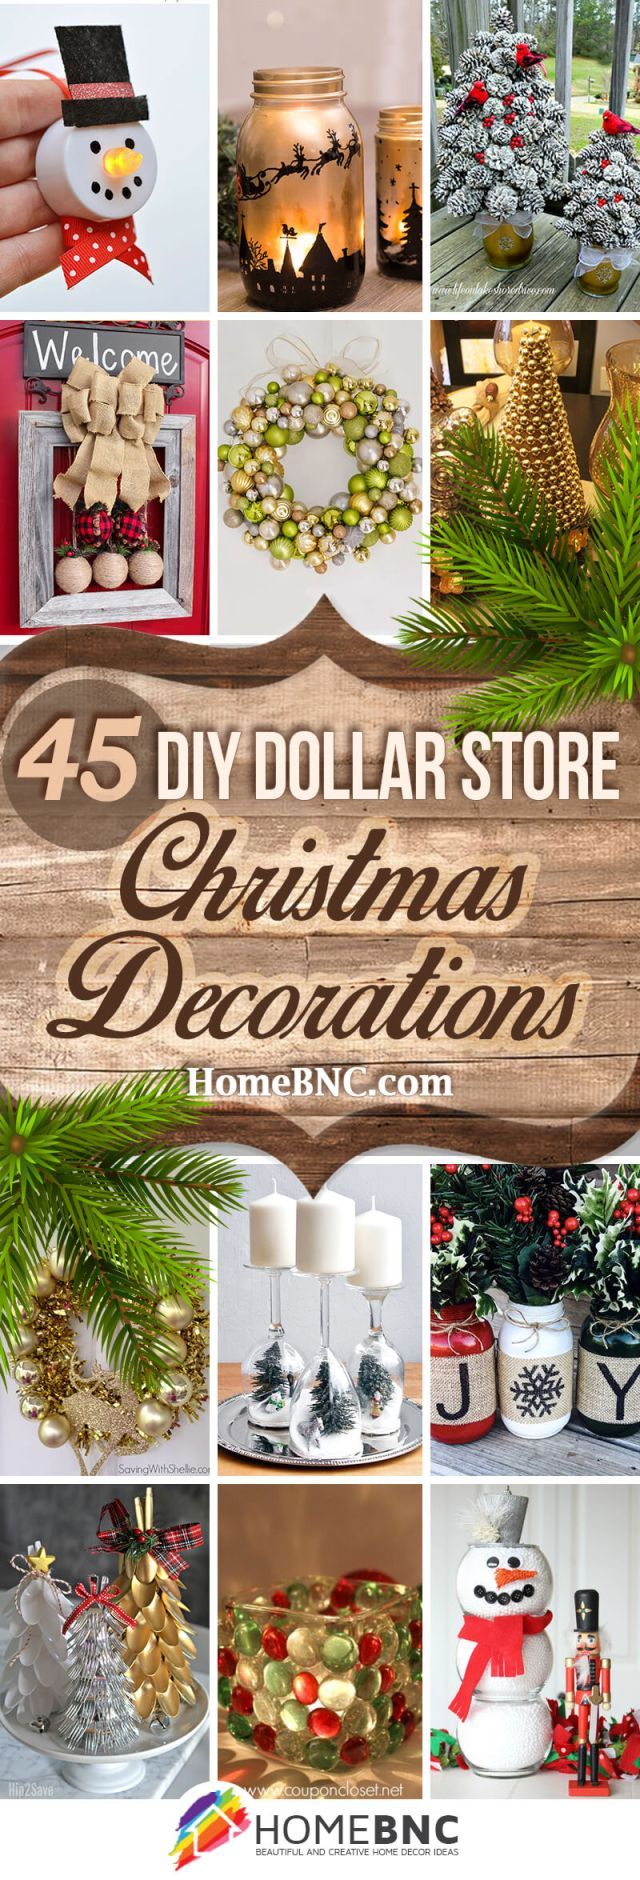 diy dollar store christmas decor crafts ideas pinterest share homebnc